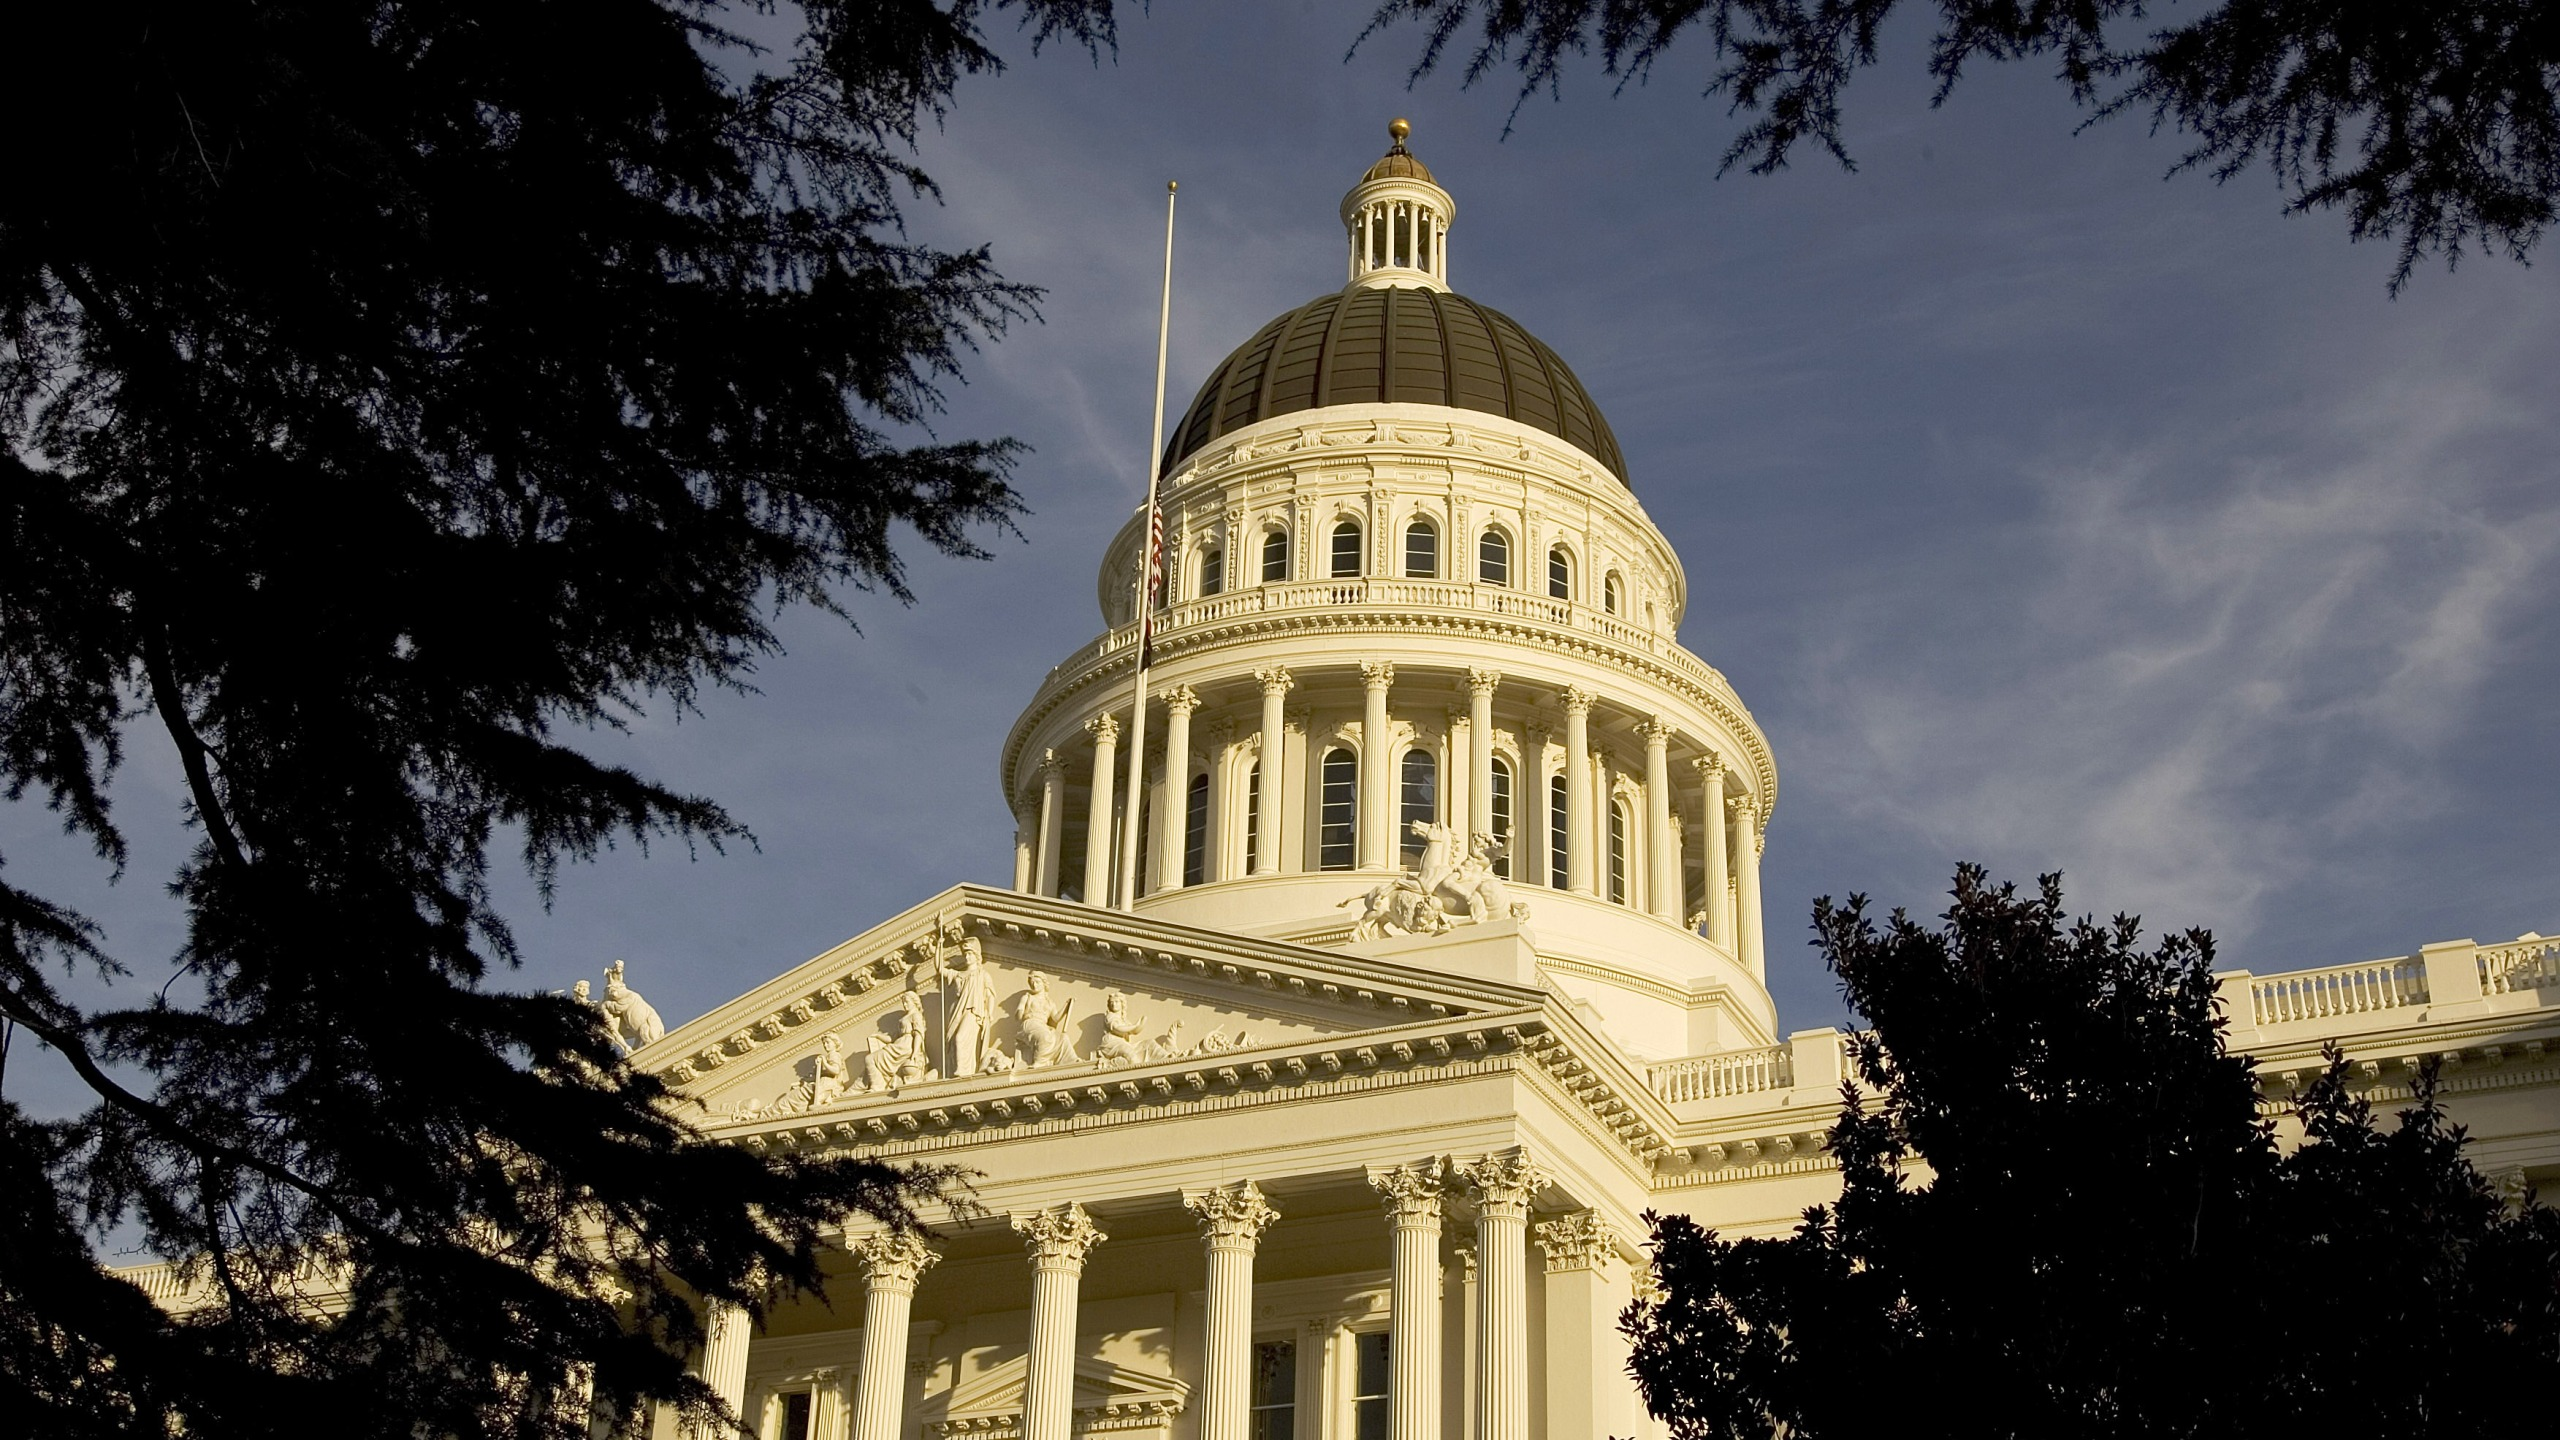 A file photo shows the state capitol in Sacramento. (David Paul Morris/Getty Images)